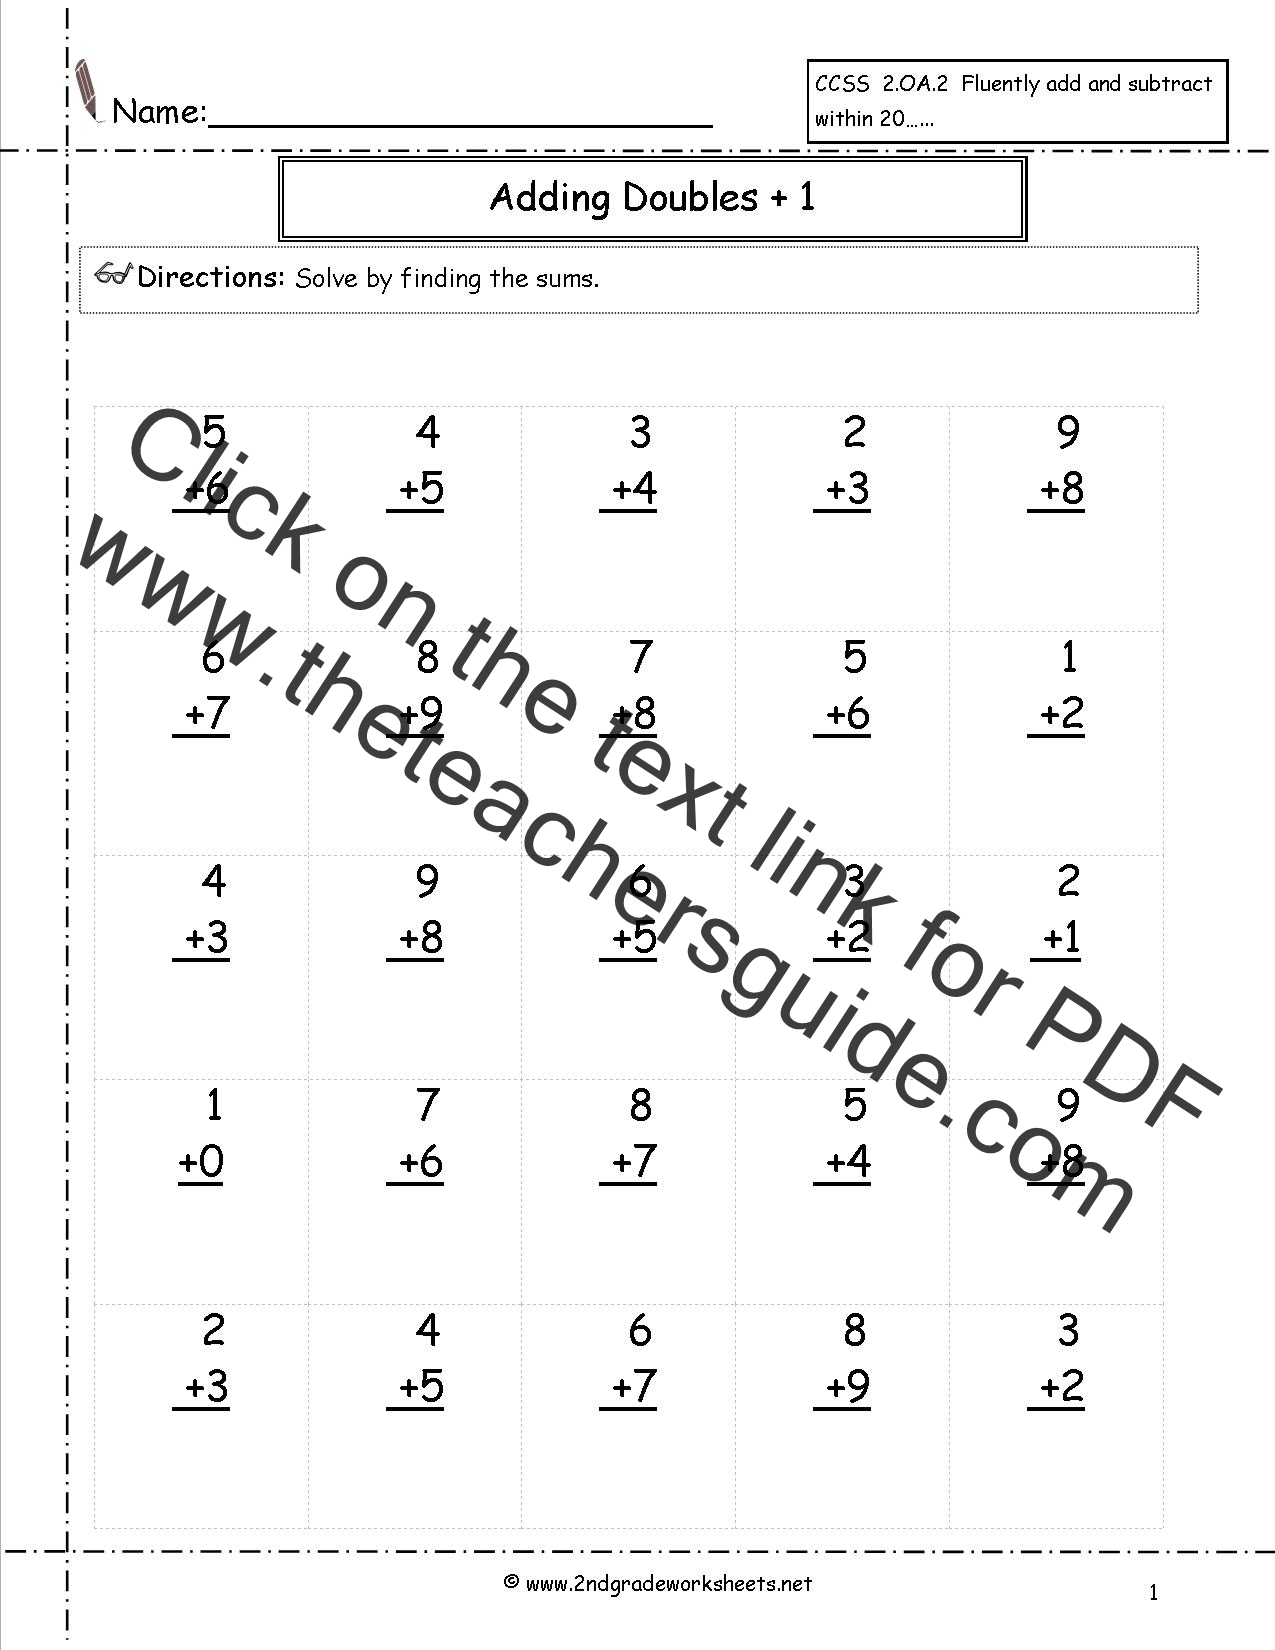 New 852 First Grade Math Worksheets Doubles Plus One